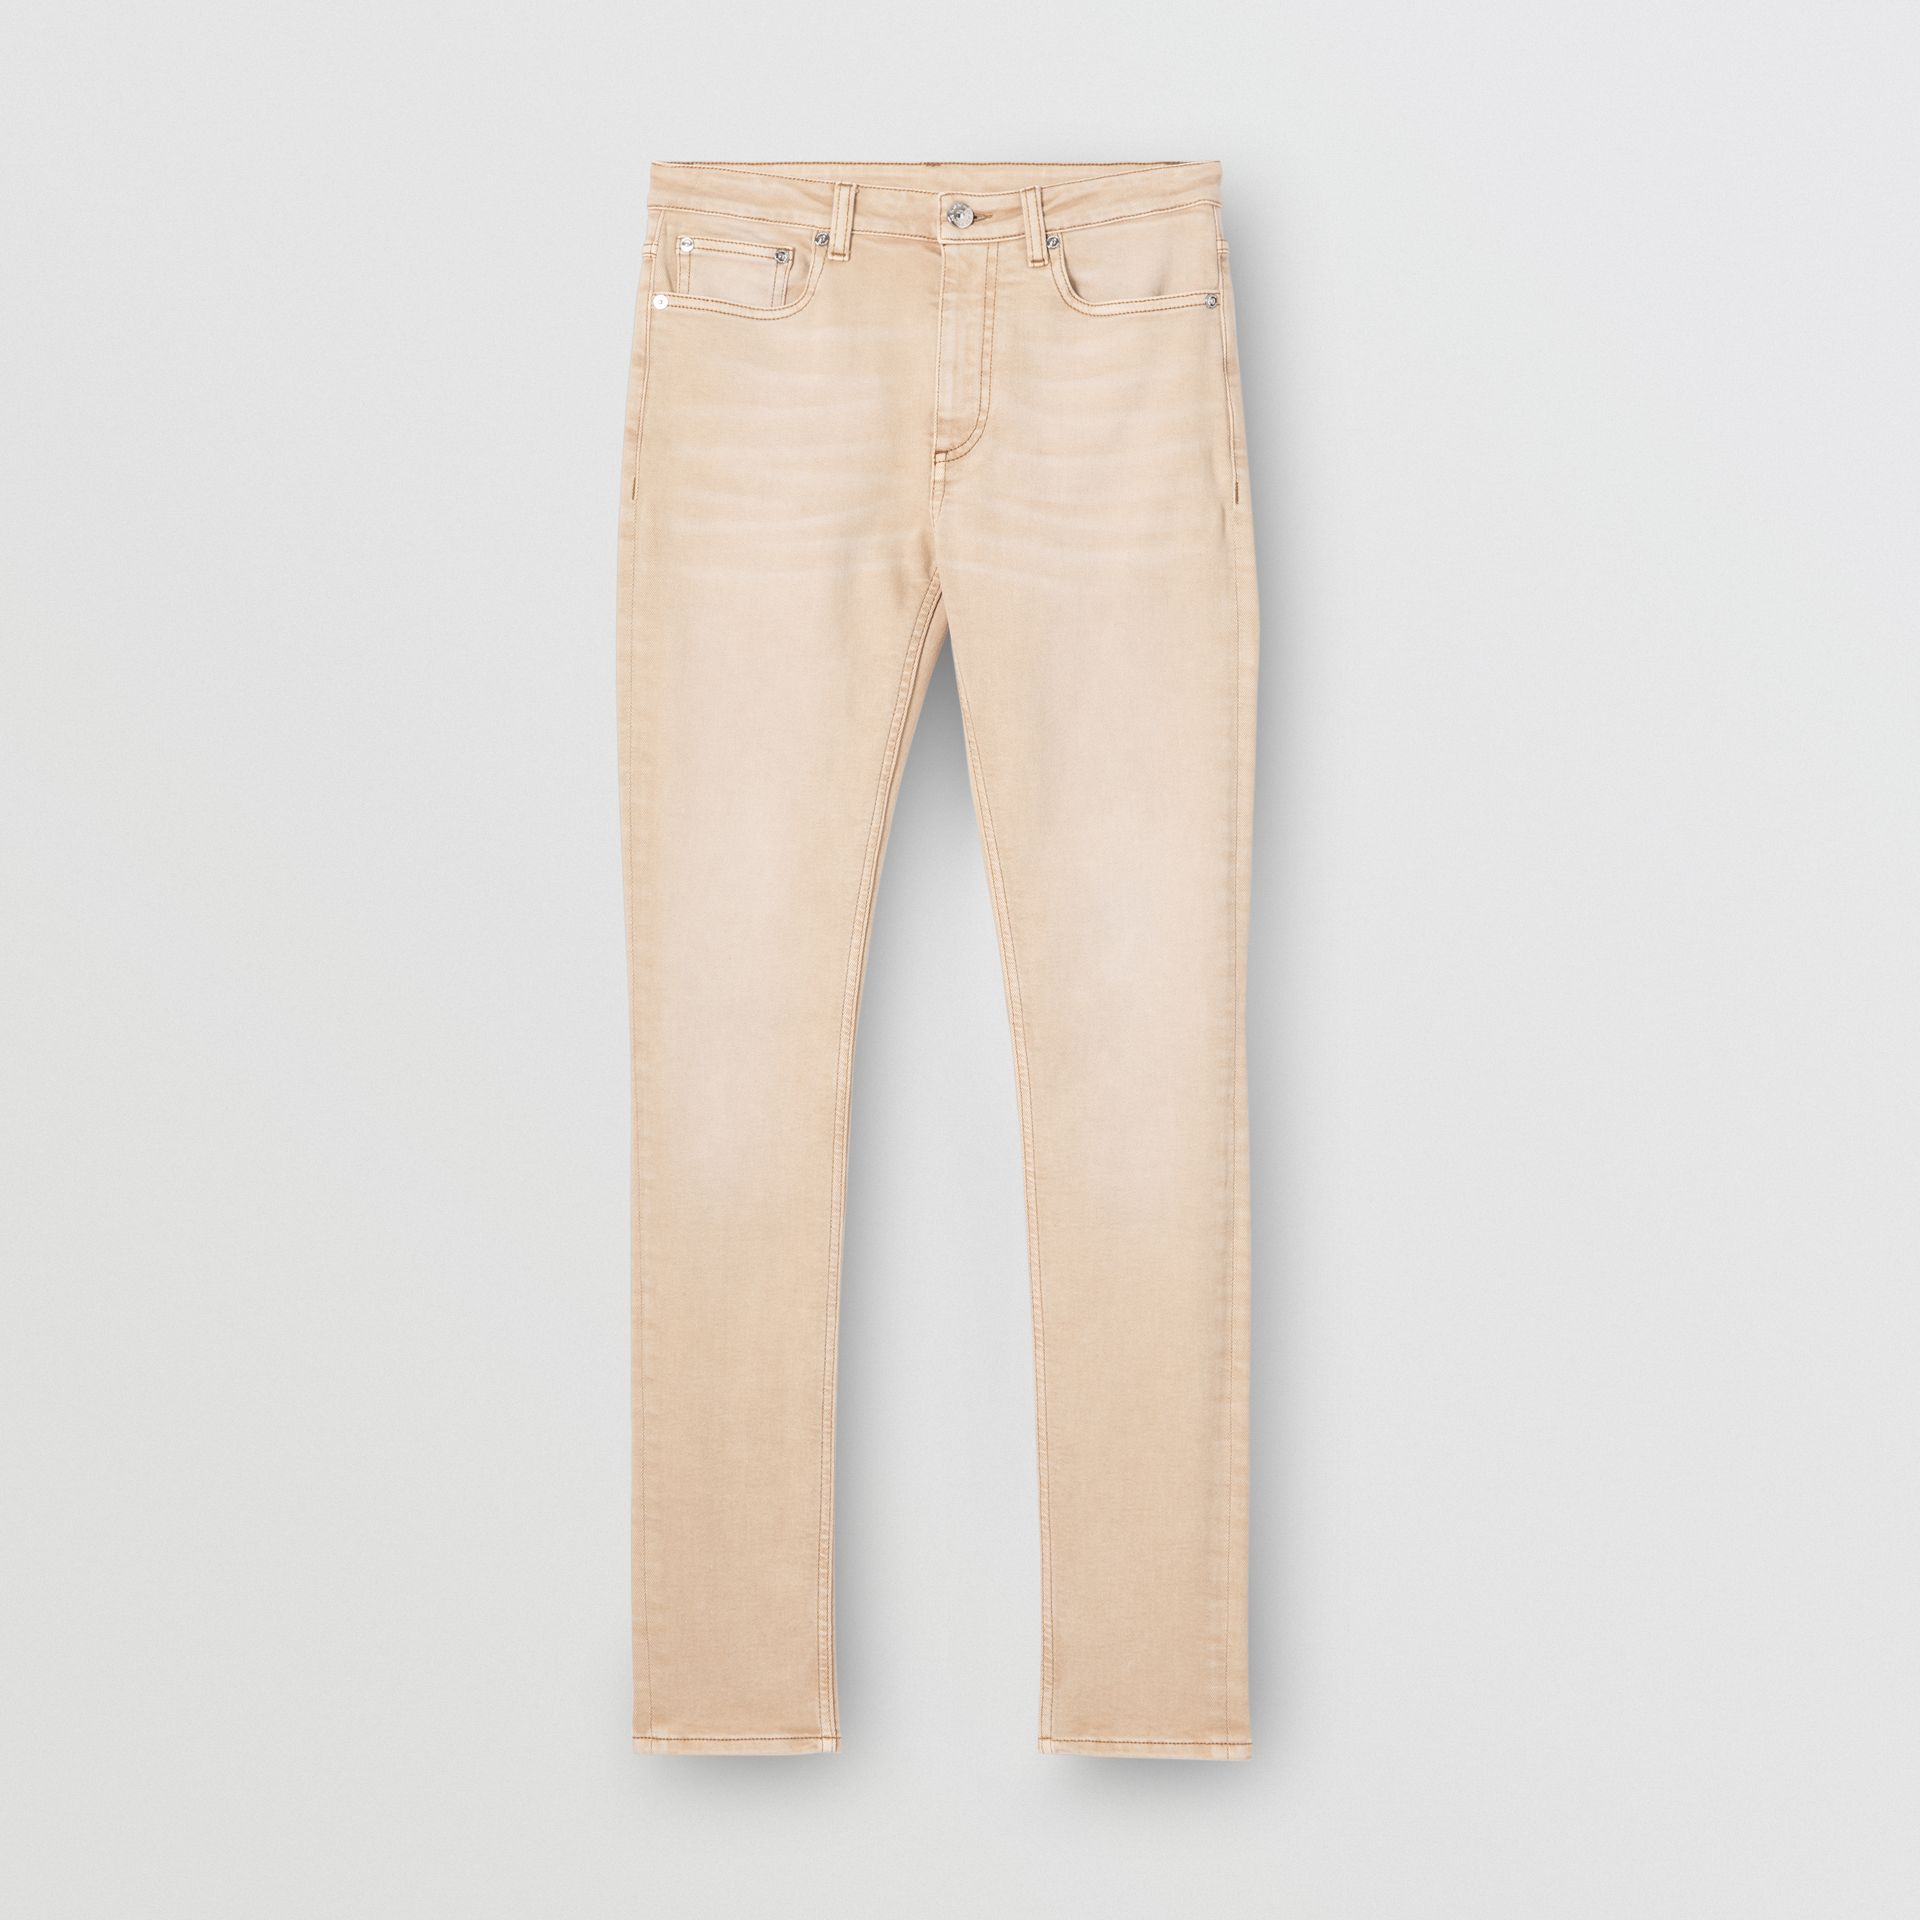 Skinny Fit Washed Japanese Denim Jeans in Honey - Women | Burberry United Kingdom - gallery image 3